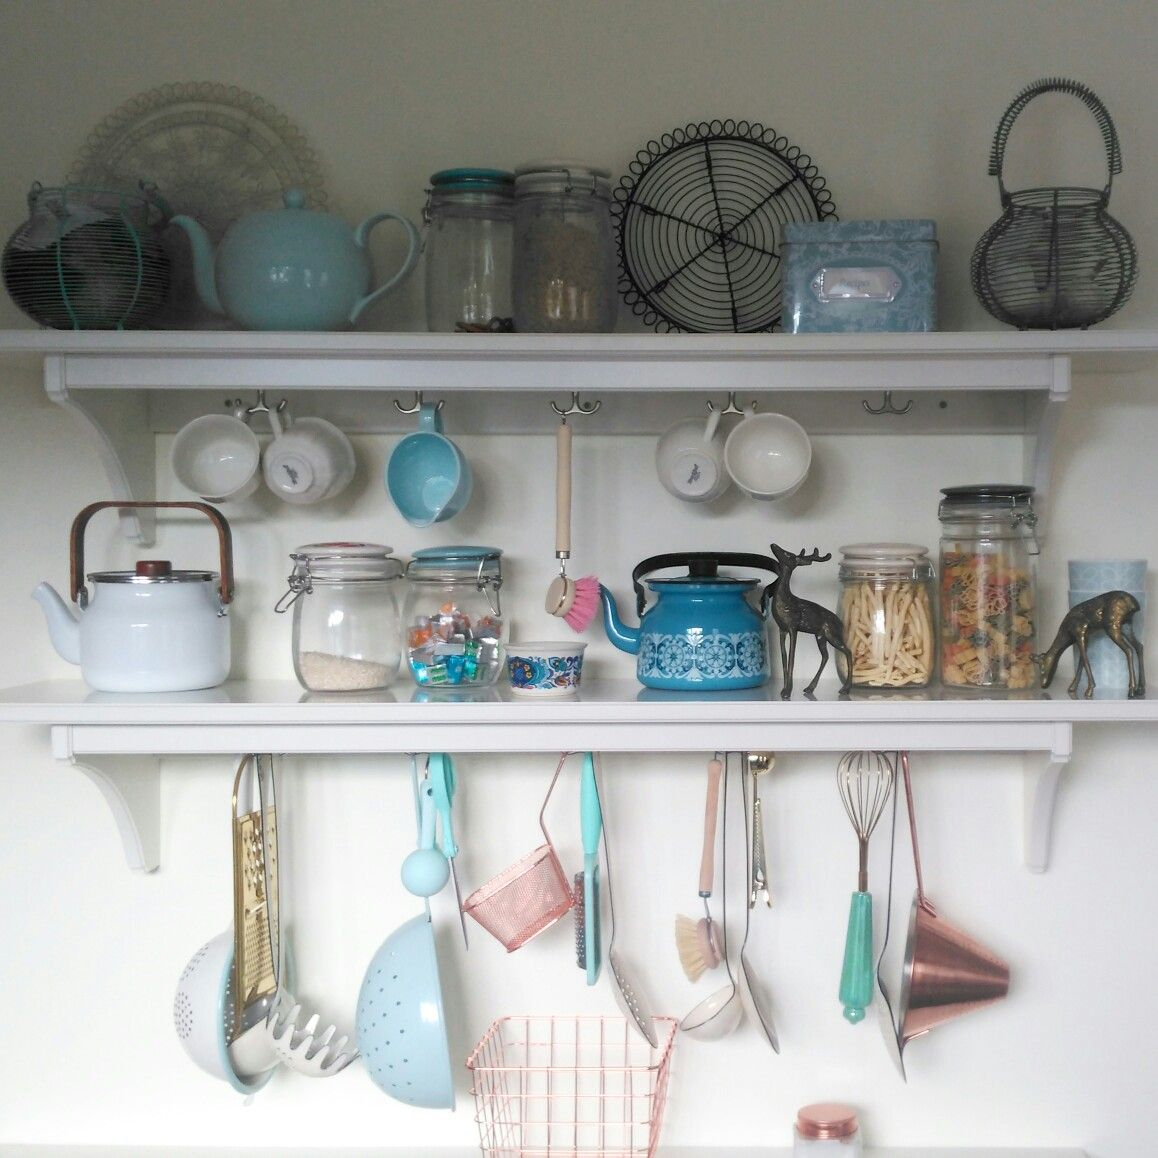 Ikea Küchen Stenstorp My Ikea Stenstorp Kitchen Shelves With Pretty Copper Duck